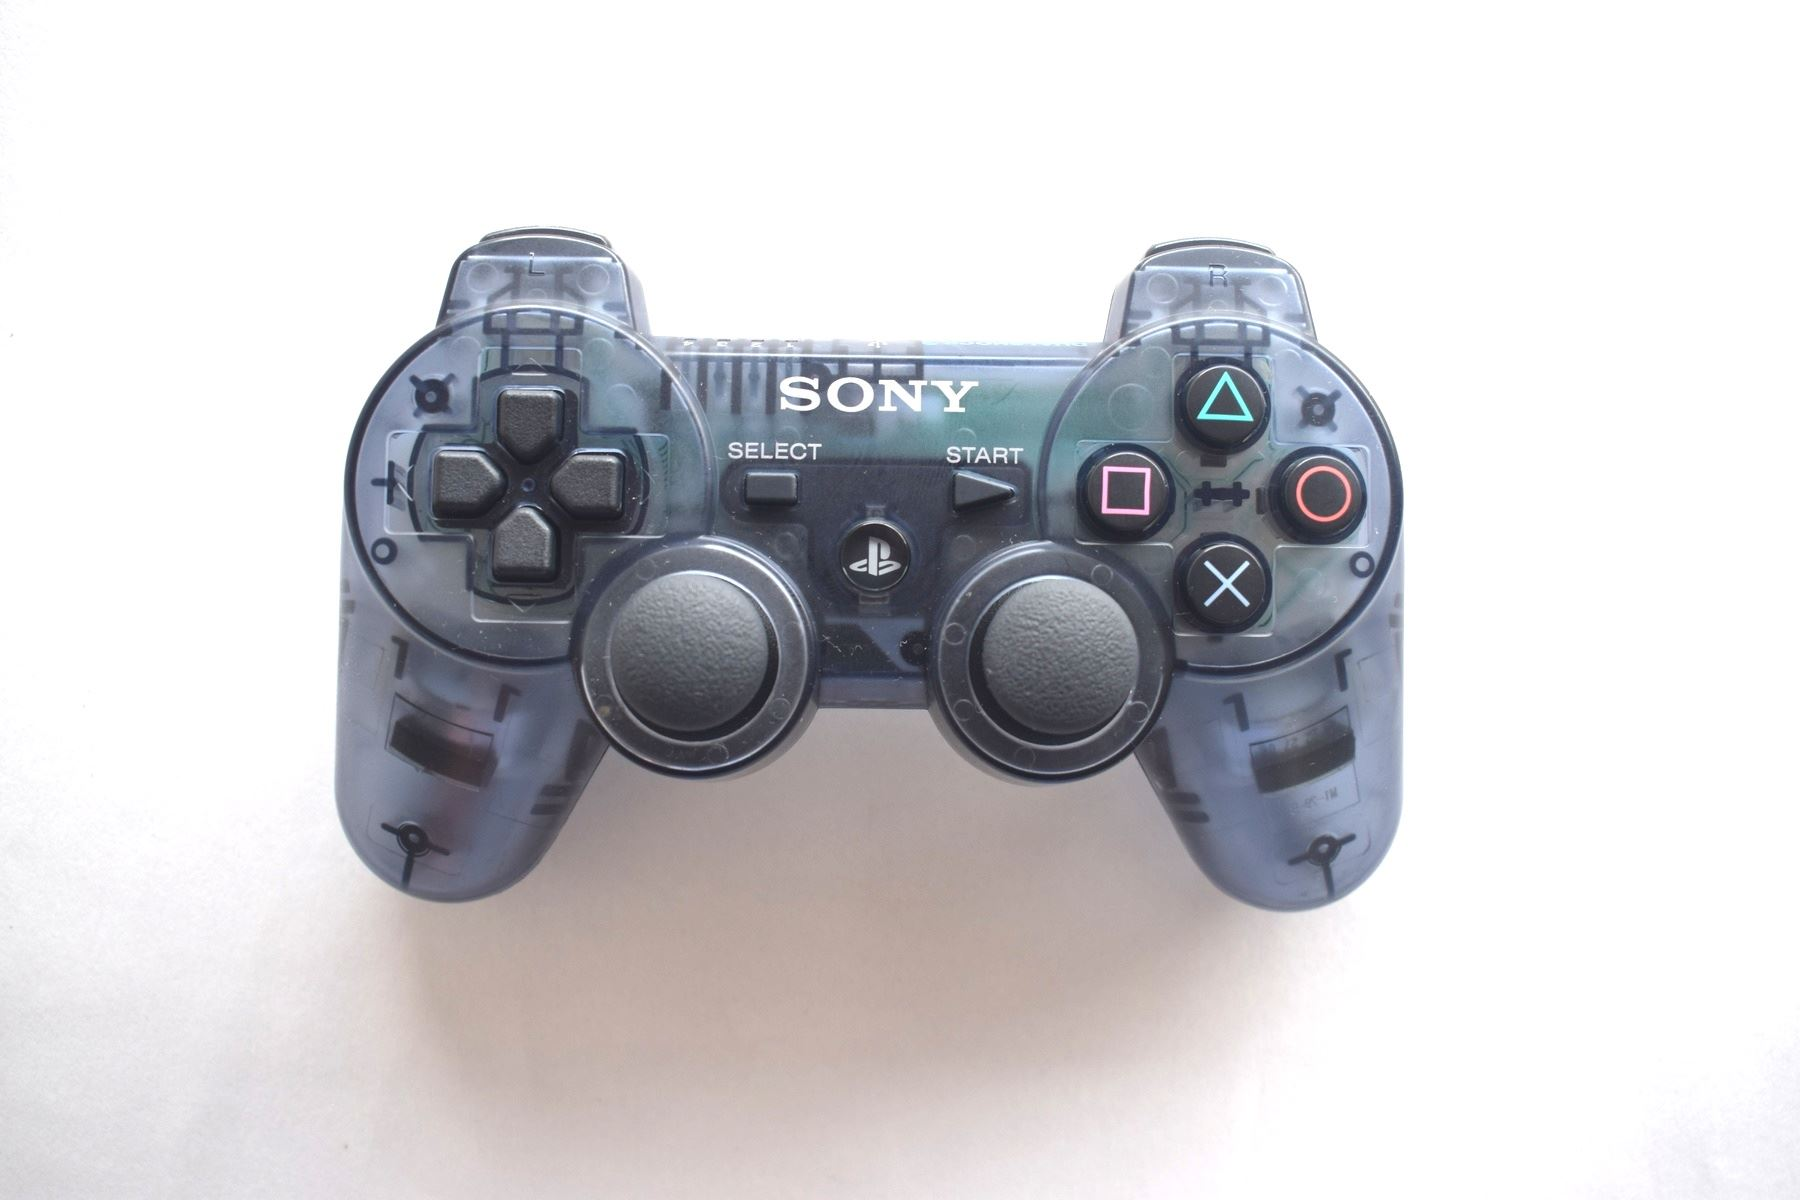 Official-Original-Sony-Playstation-Dual-Shock-3-PS3-Controller-Multiple-Colours thumbnail 67